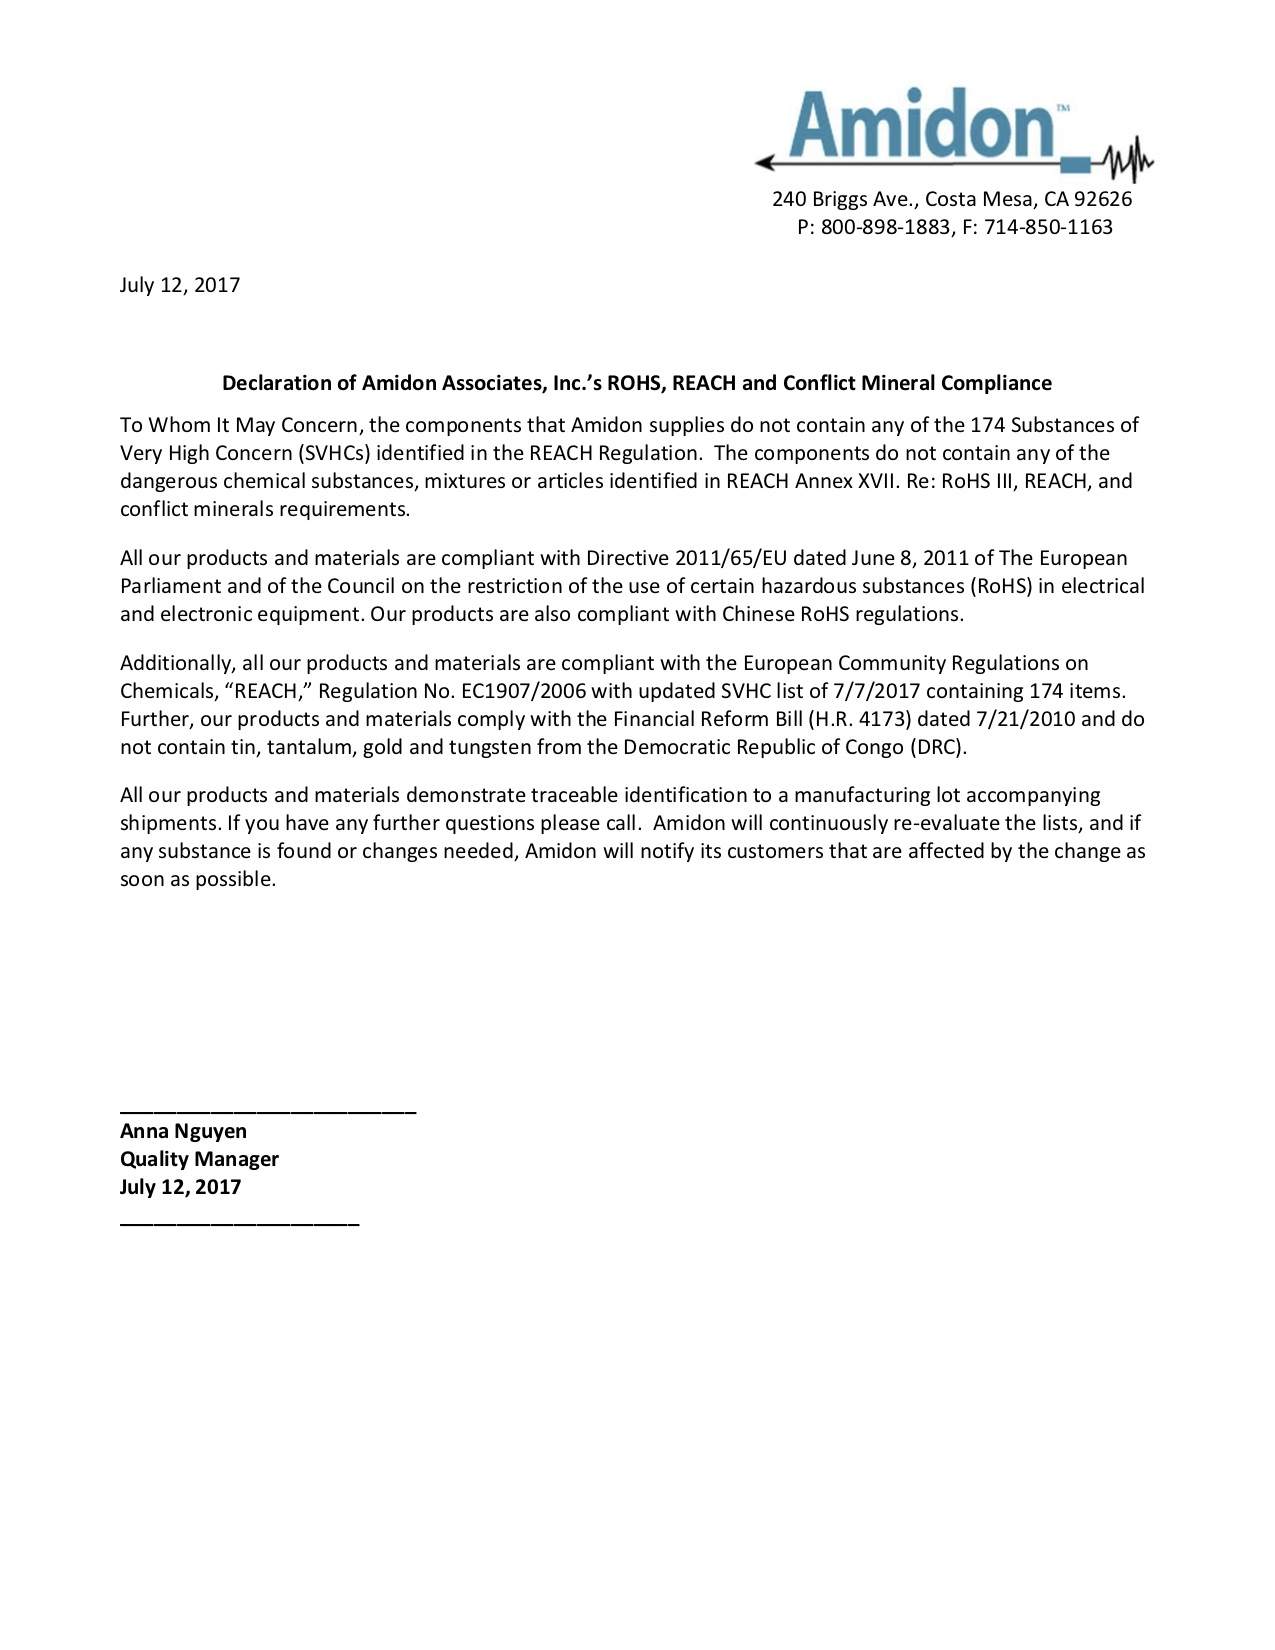 amidon-rohs-statement-20140102.png